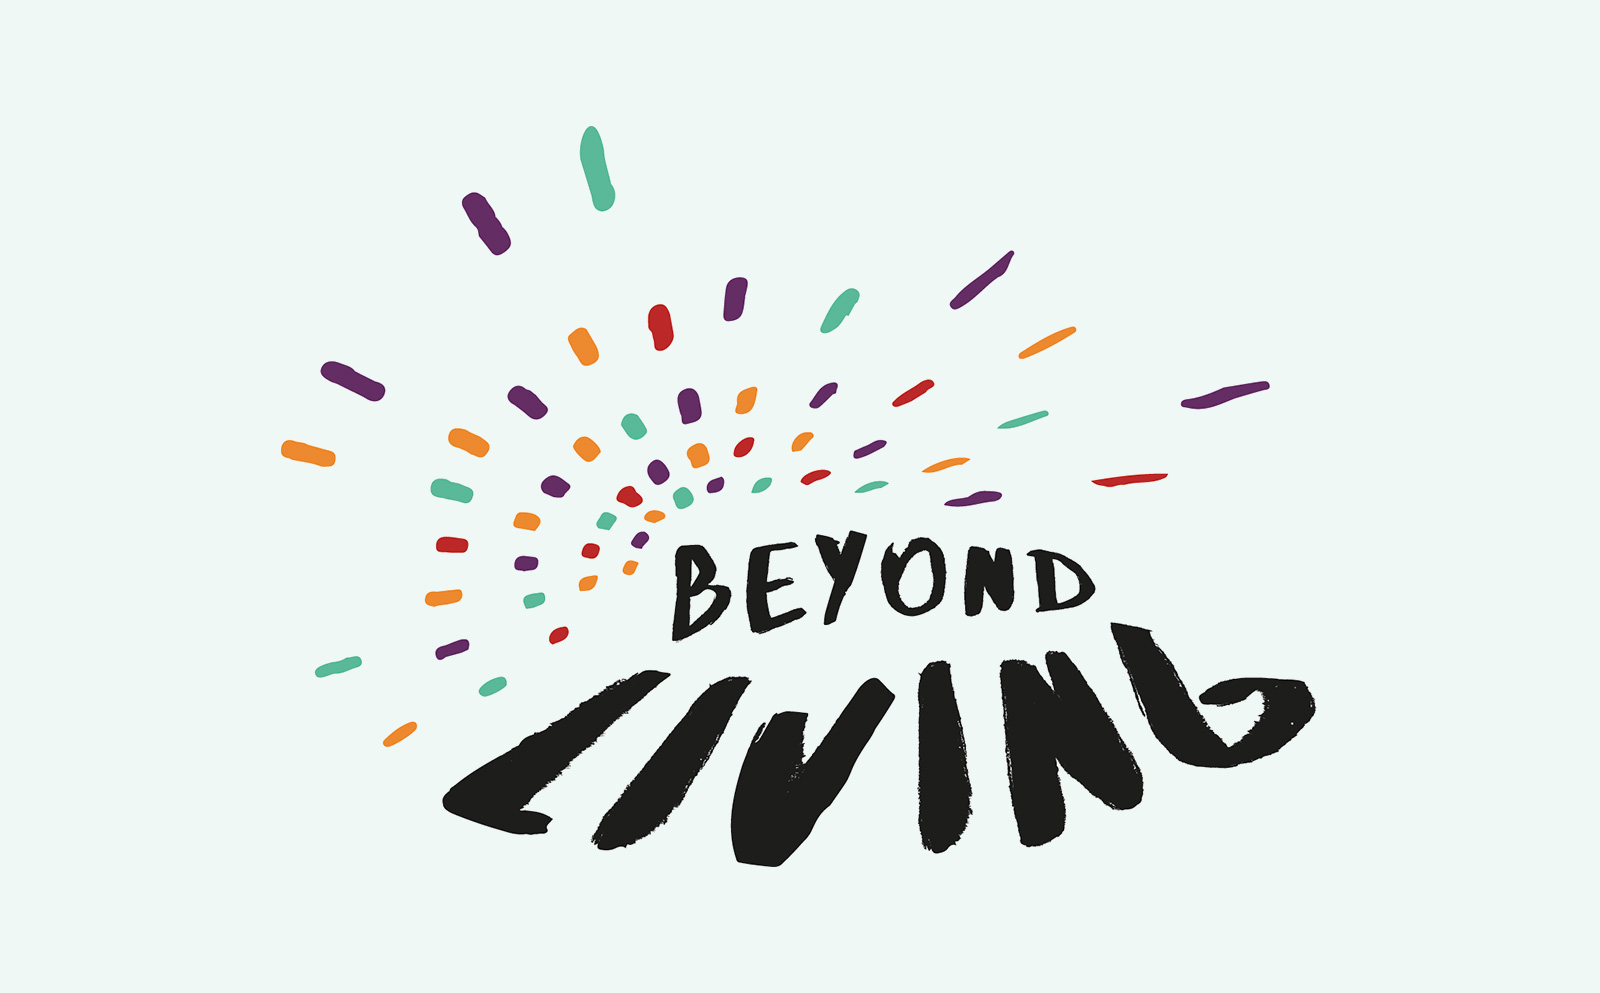 Beyond living logo